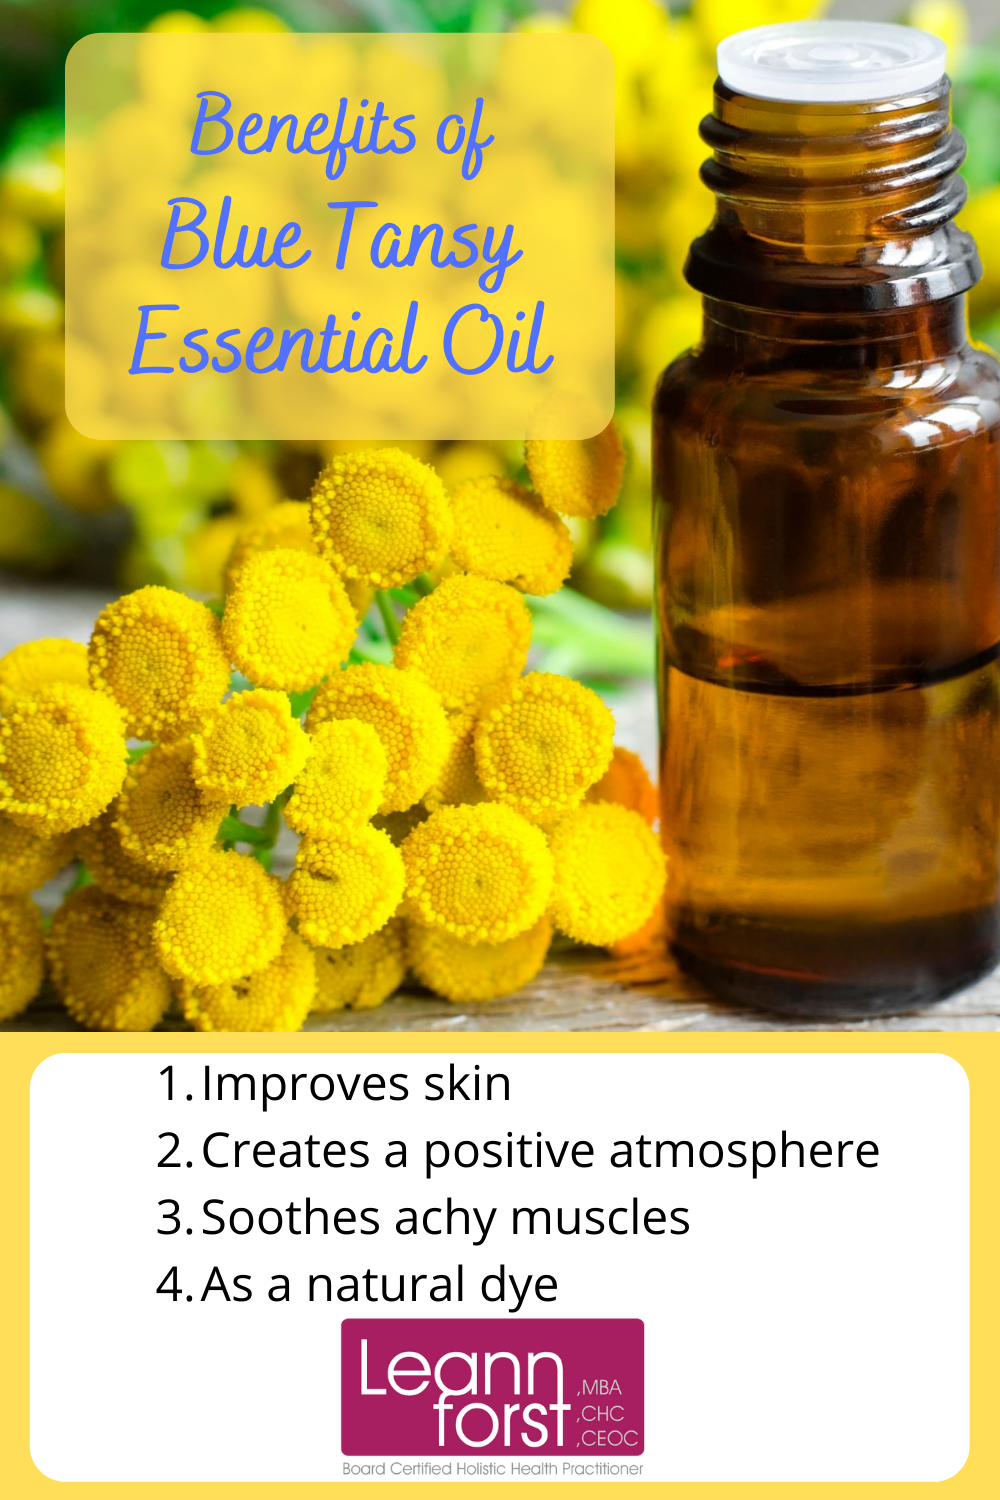 Benefits of Blue Tansy Essential Oil | LeannForst.com